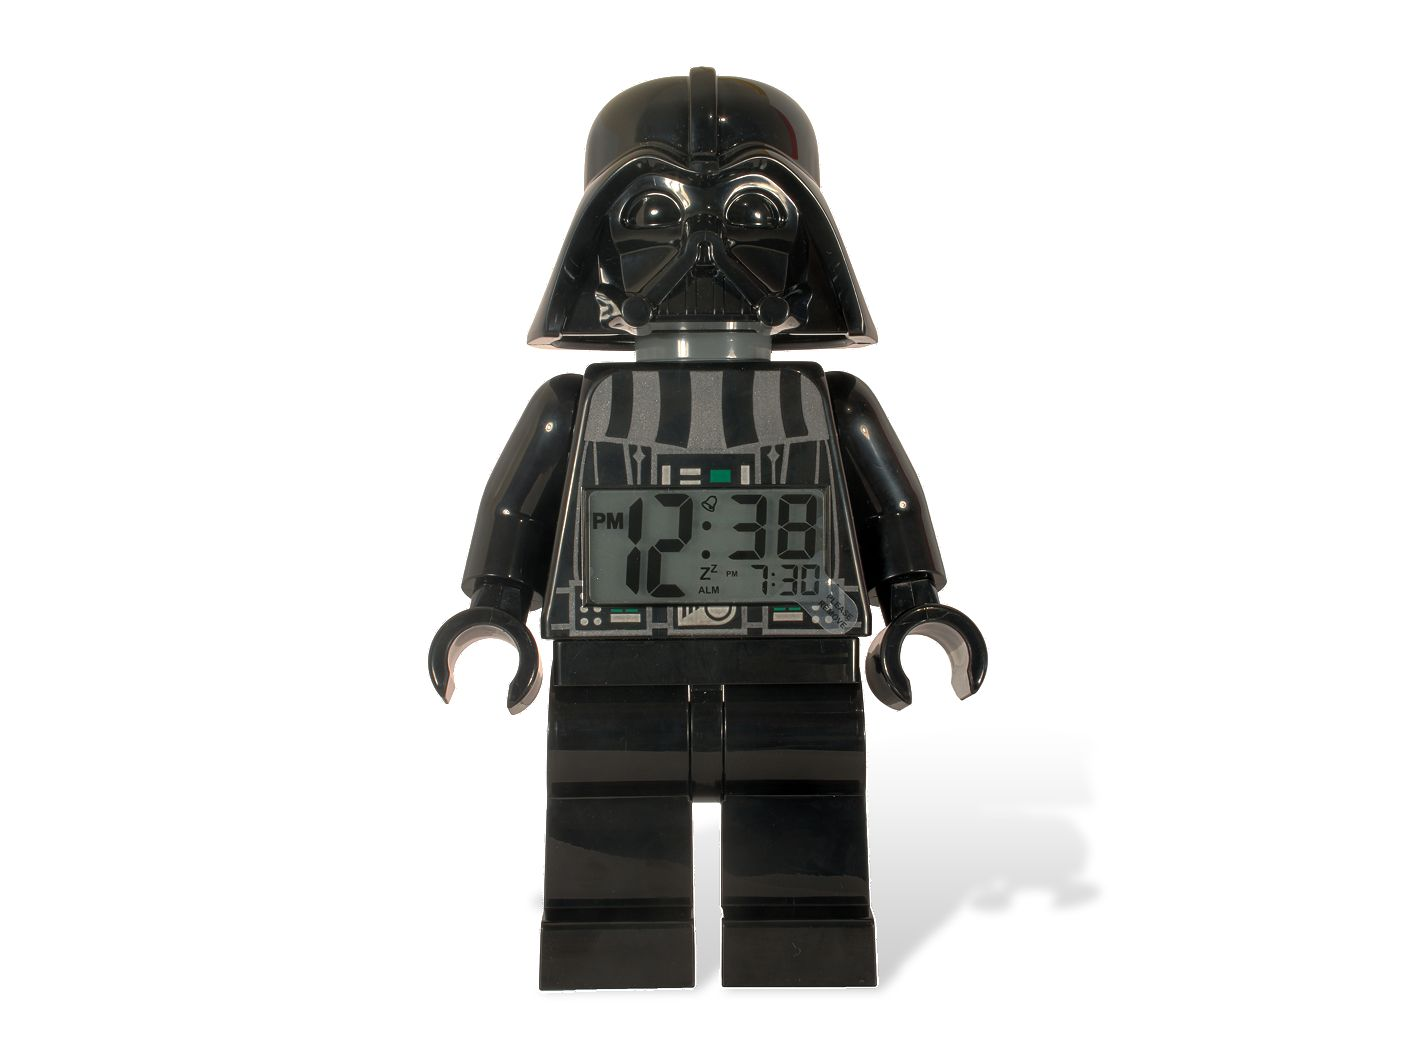 Sveglia con minifigure di Darth Vader™ LEGO® <i>Star Wars</i>™